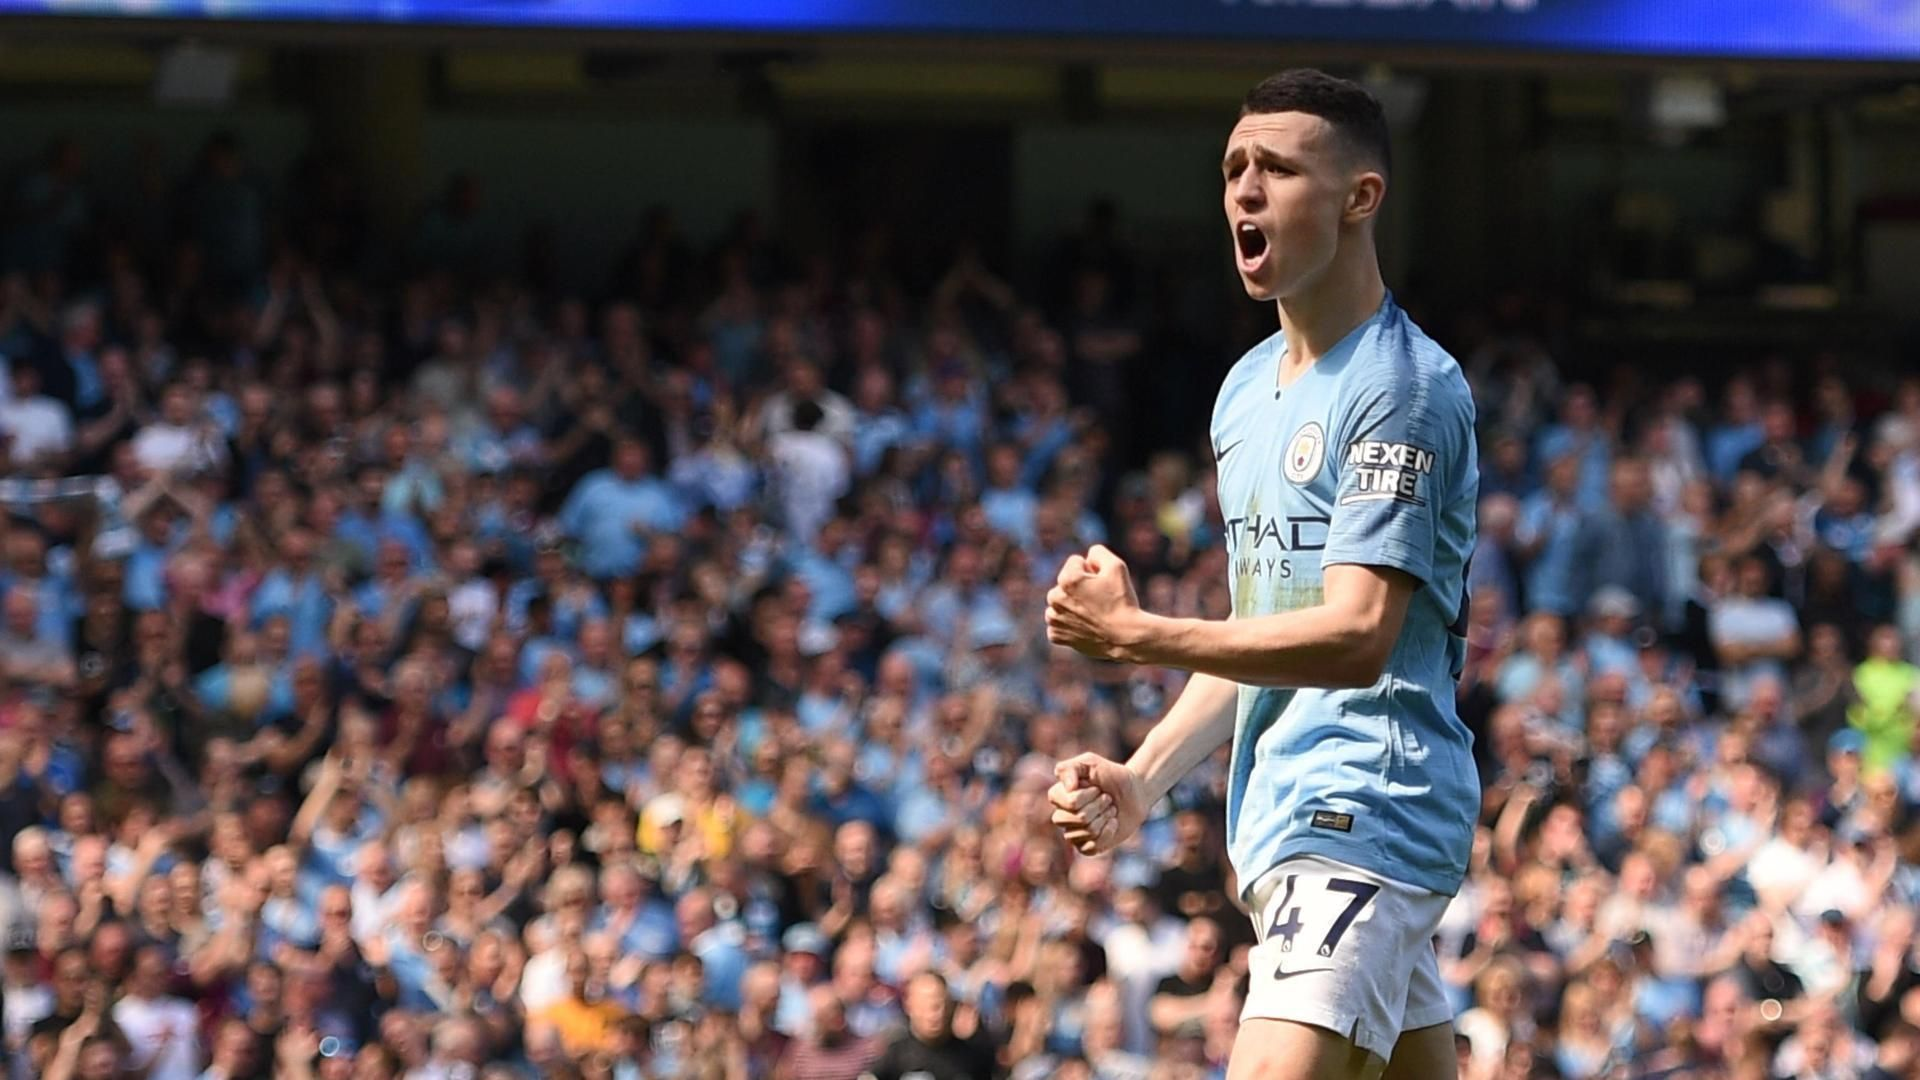 Foden scores 1st Premier League goal for Man City